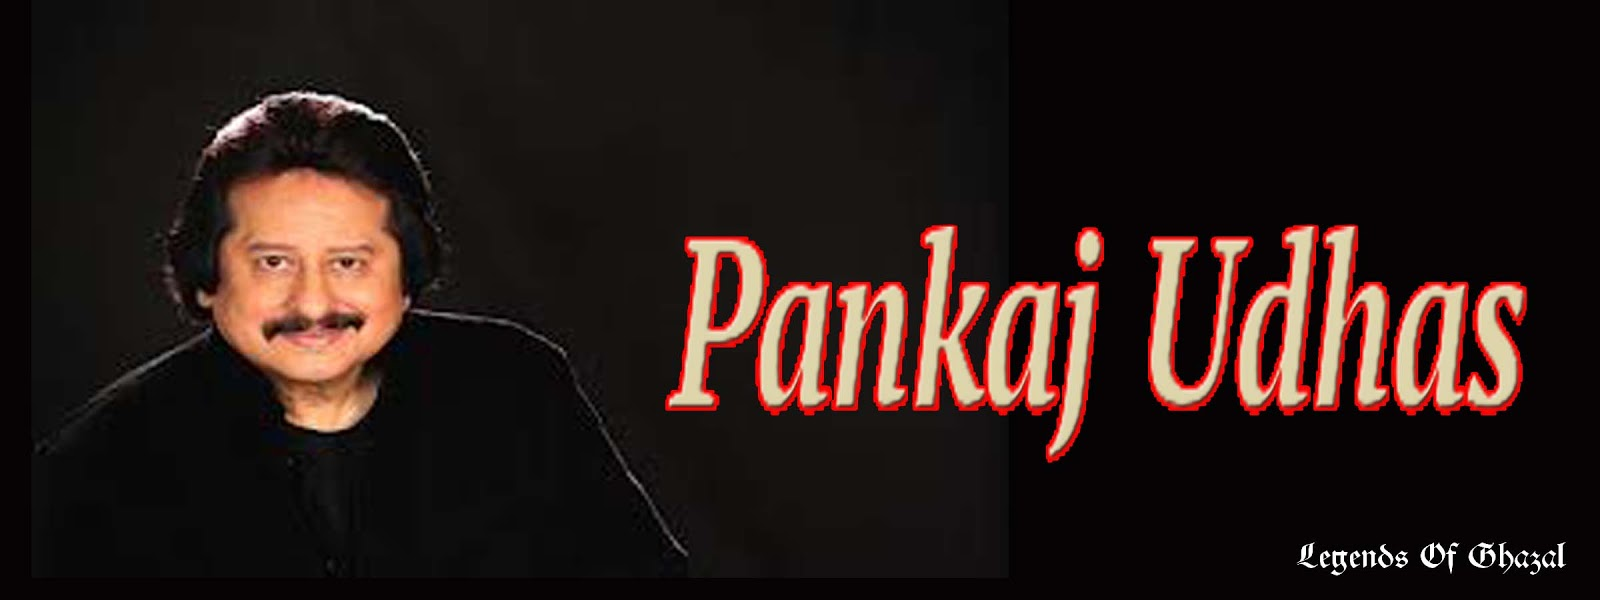 Pankaj Udas Gazals Mp3 Free Download - Mp3Take